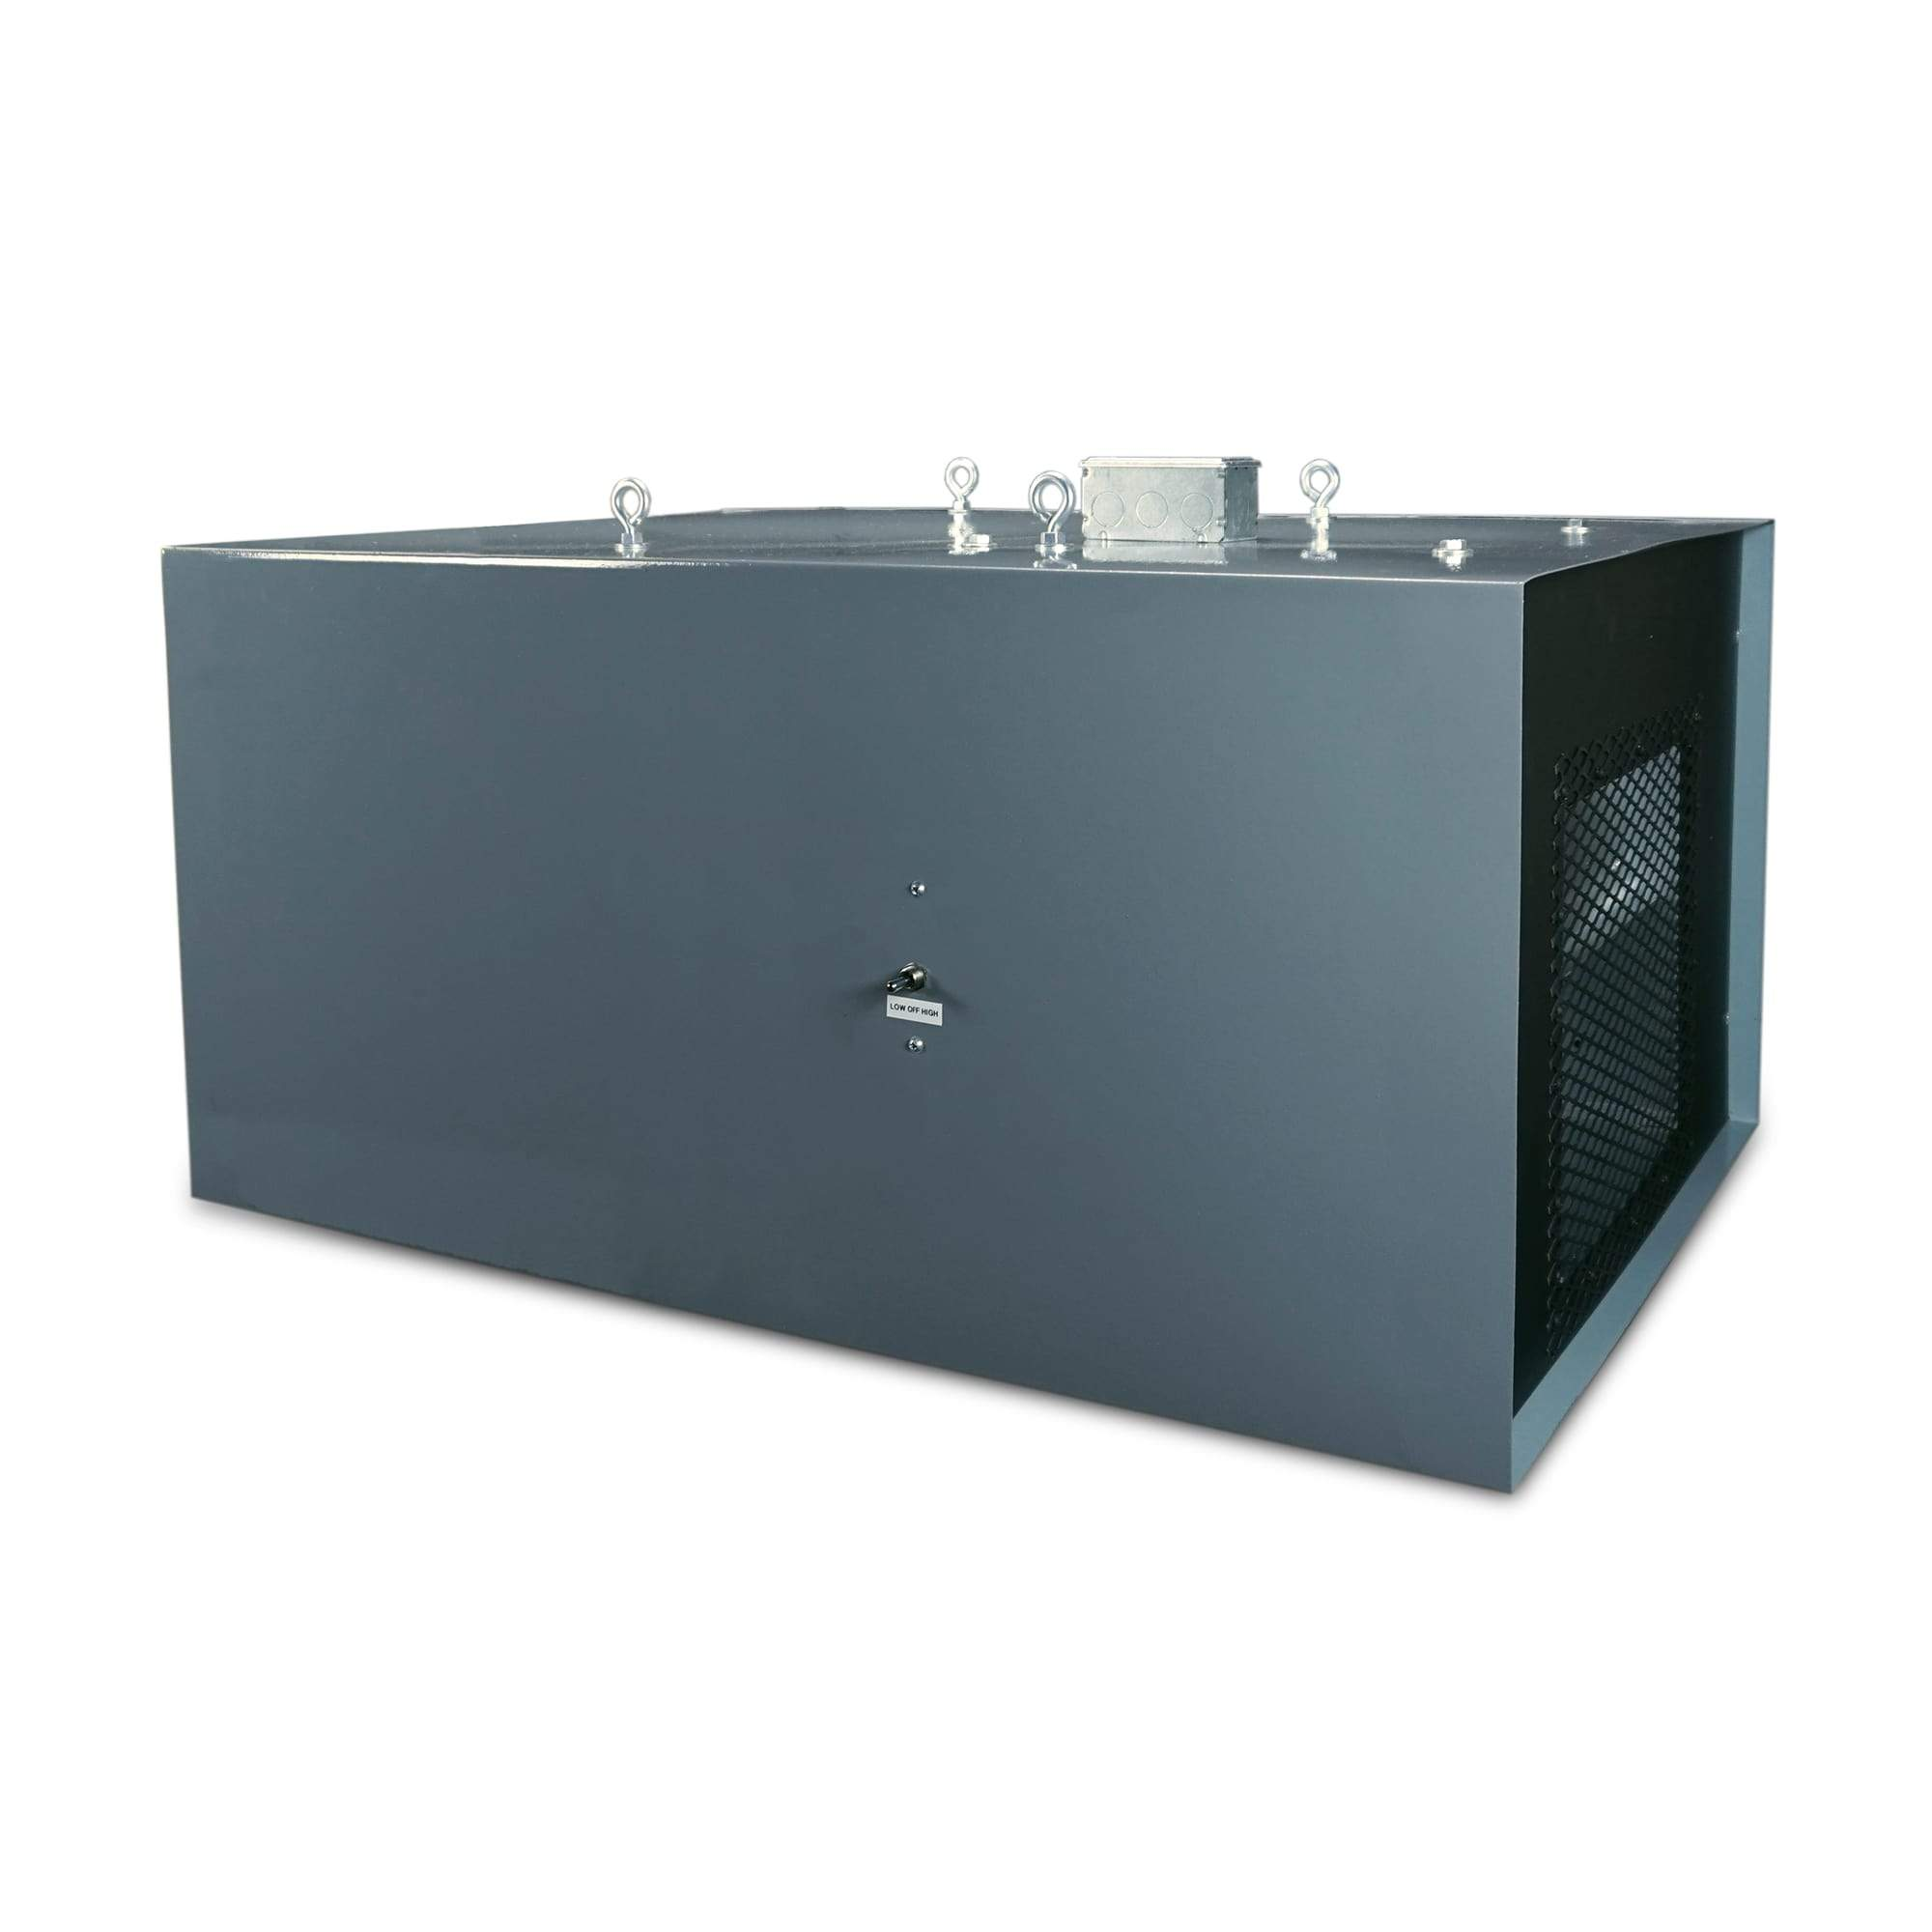 MatrixAir Smoke Eater MaxMountXL Industrial Air Purification System